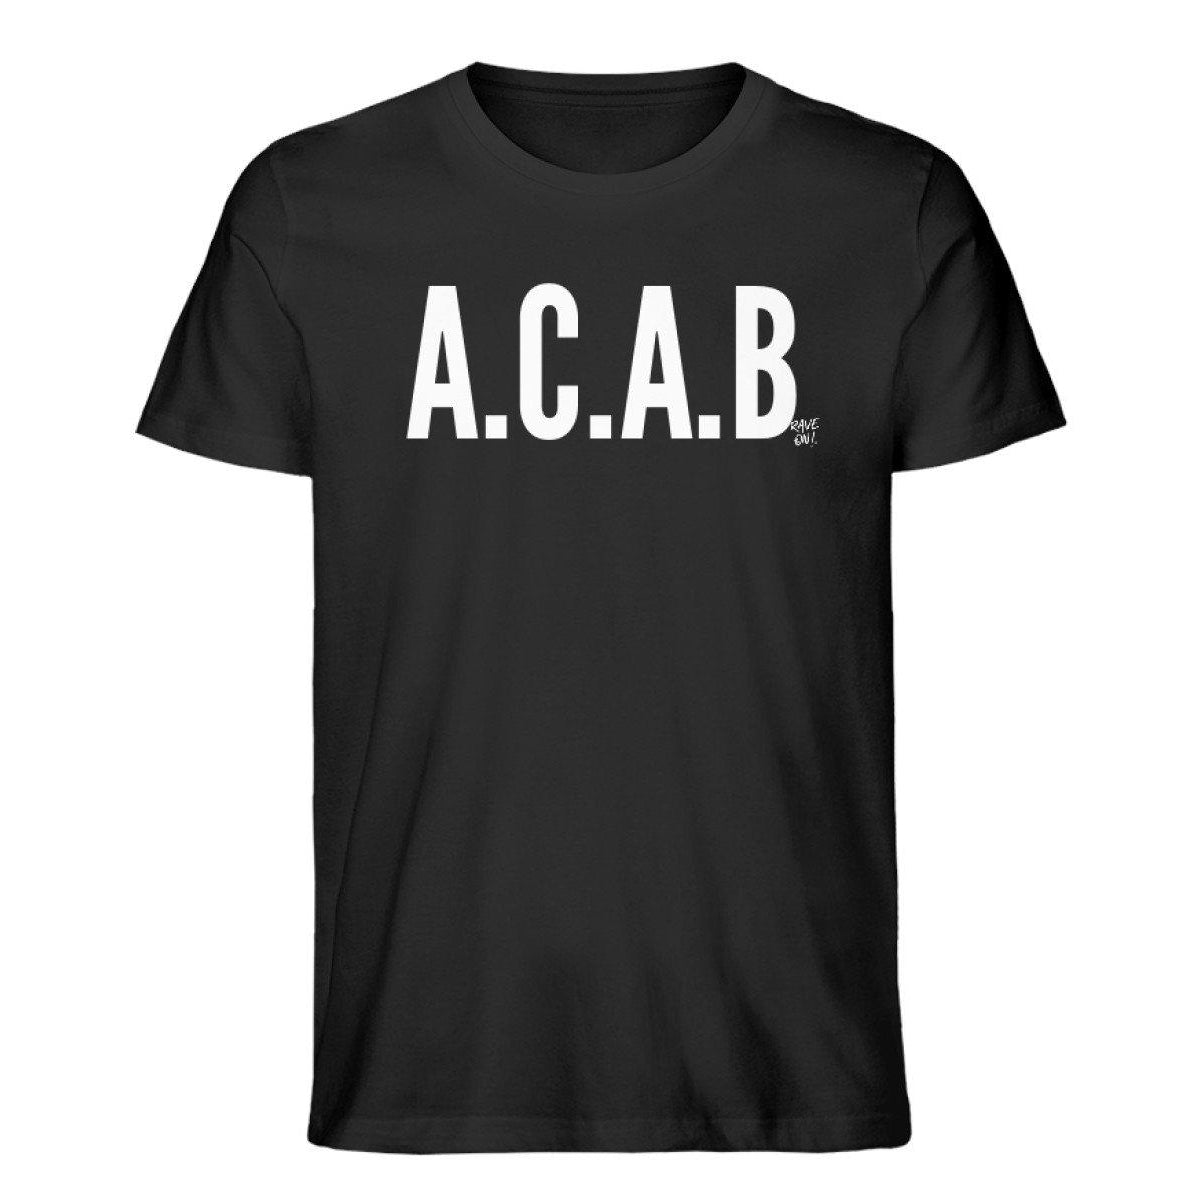 A.C.A.B Rave On!® Black - Herren Premium Organic Shirt Creator T-Shirt ST/ST Black / S - Rave On!® der Club & Techno Szene Shop für Coole Junge Mode Streetwear Style & Fashion Outfits + Sexy Festival 420 Stuff